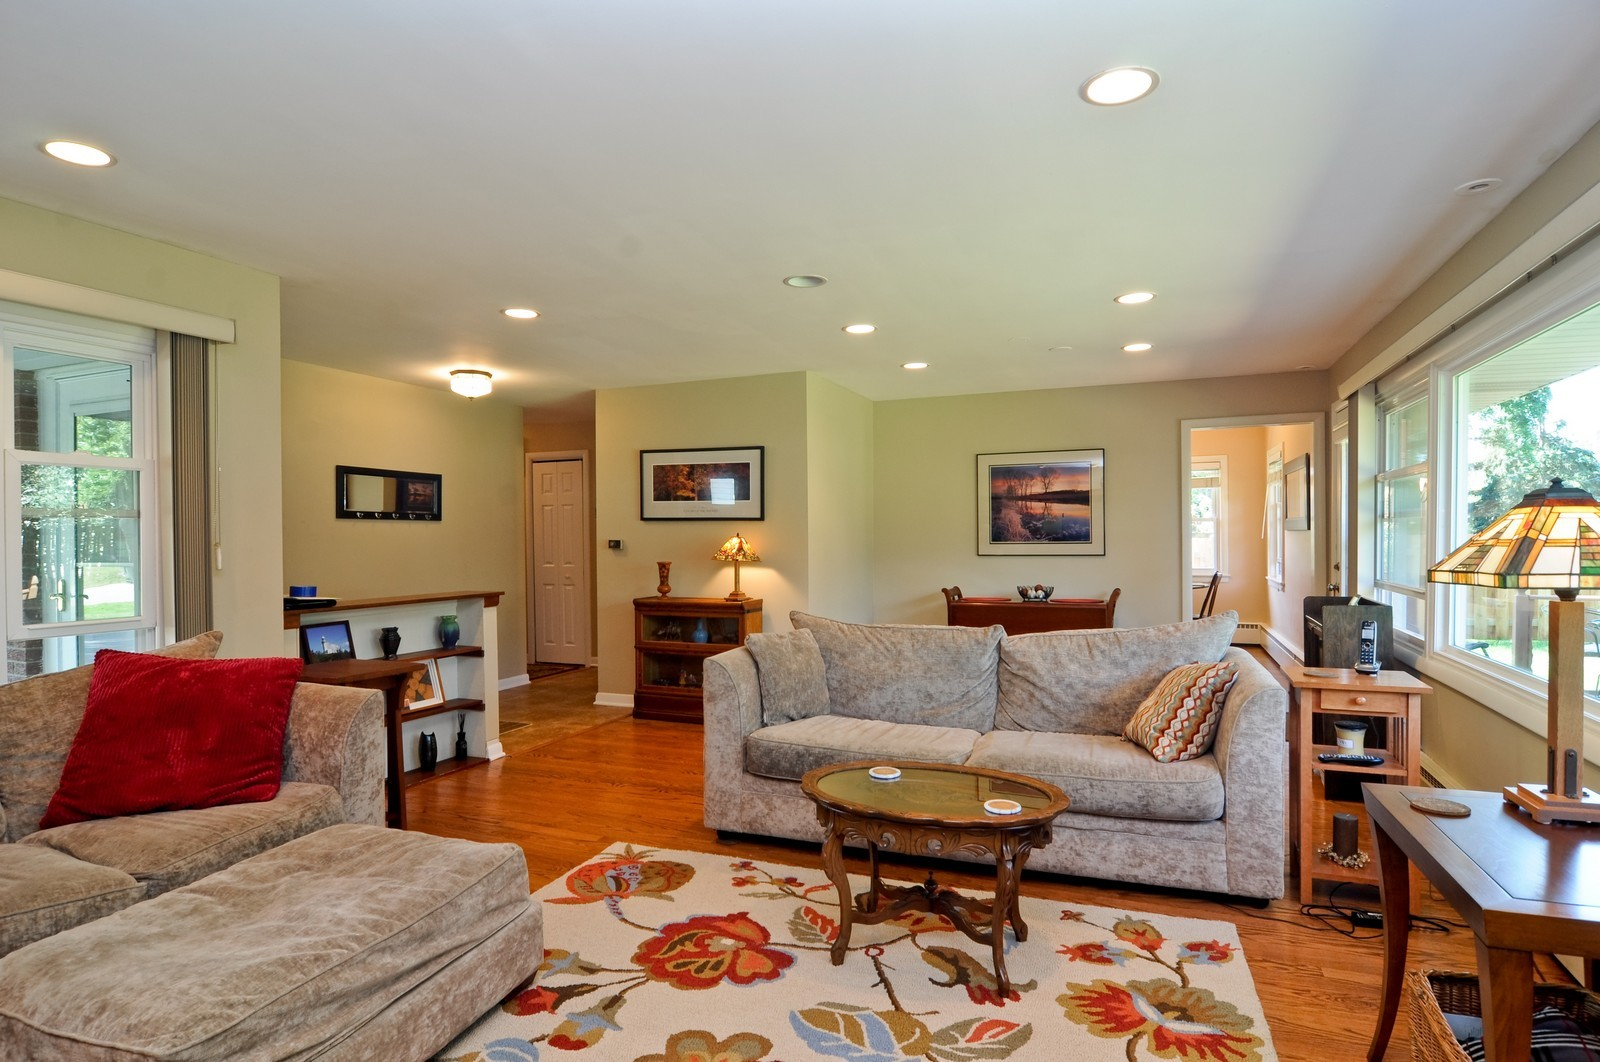 Real Estate Photography - 240 Sharon Dr, Barrington, IL, 60010 - Location 2